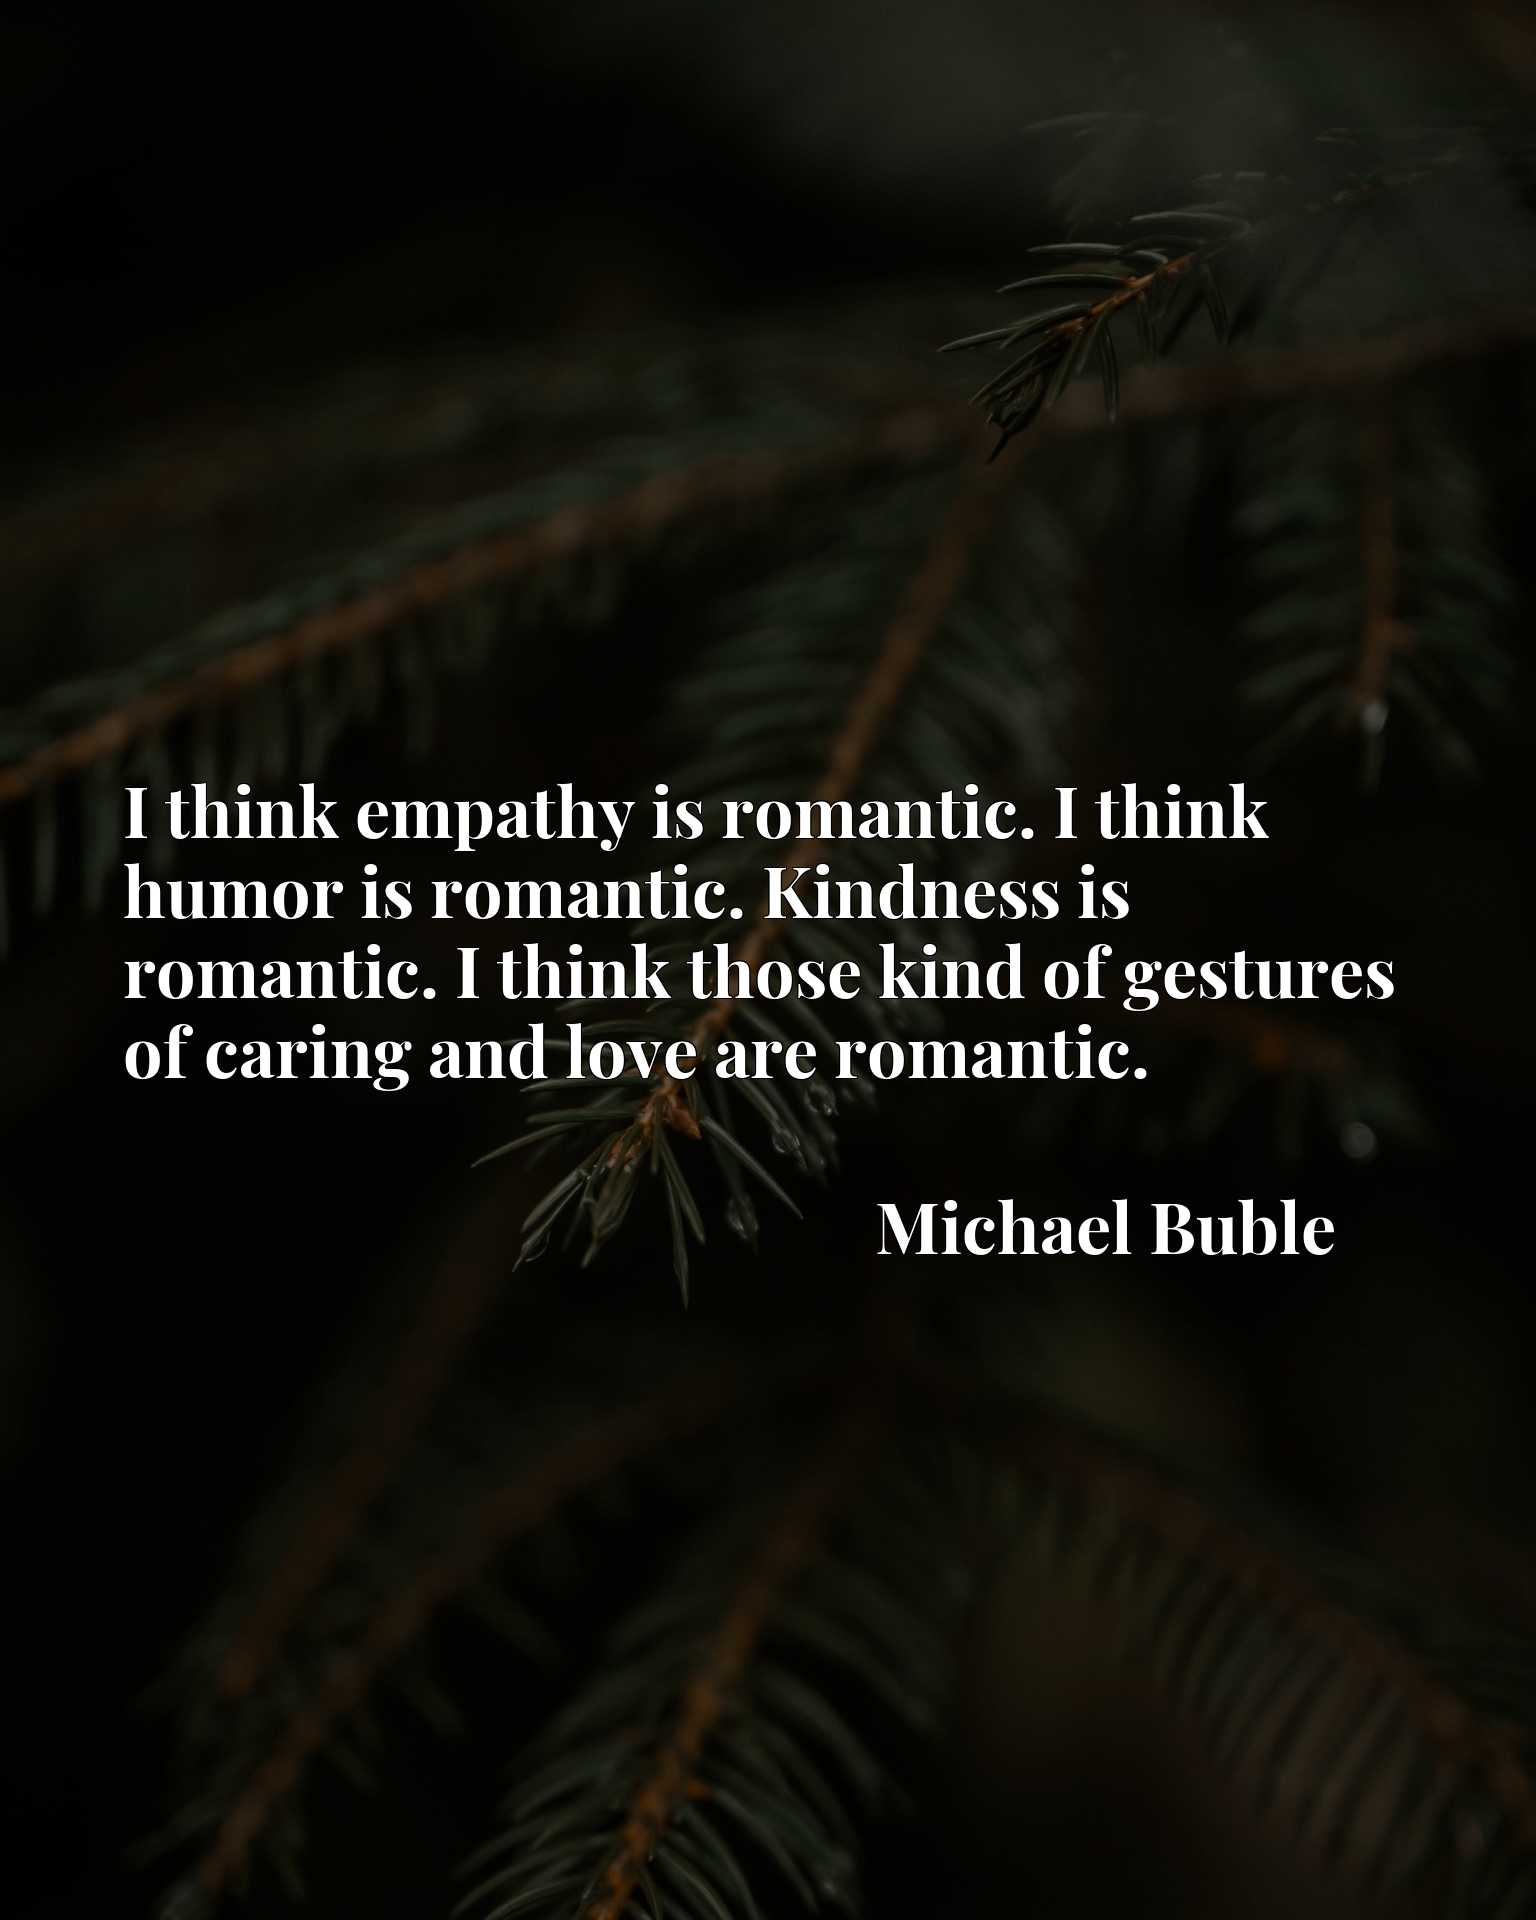 I think empathy is romantic. I think humor is romantic. Kindness is romantic. I think those kind of gestures of caring and love are romantic.